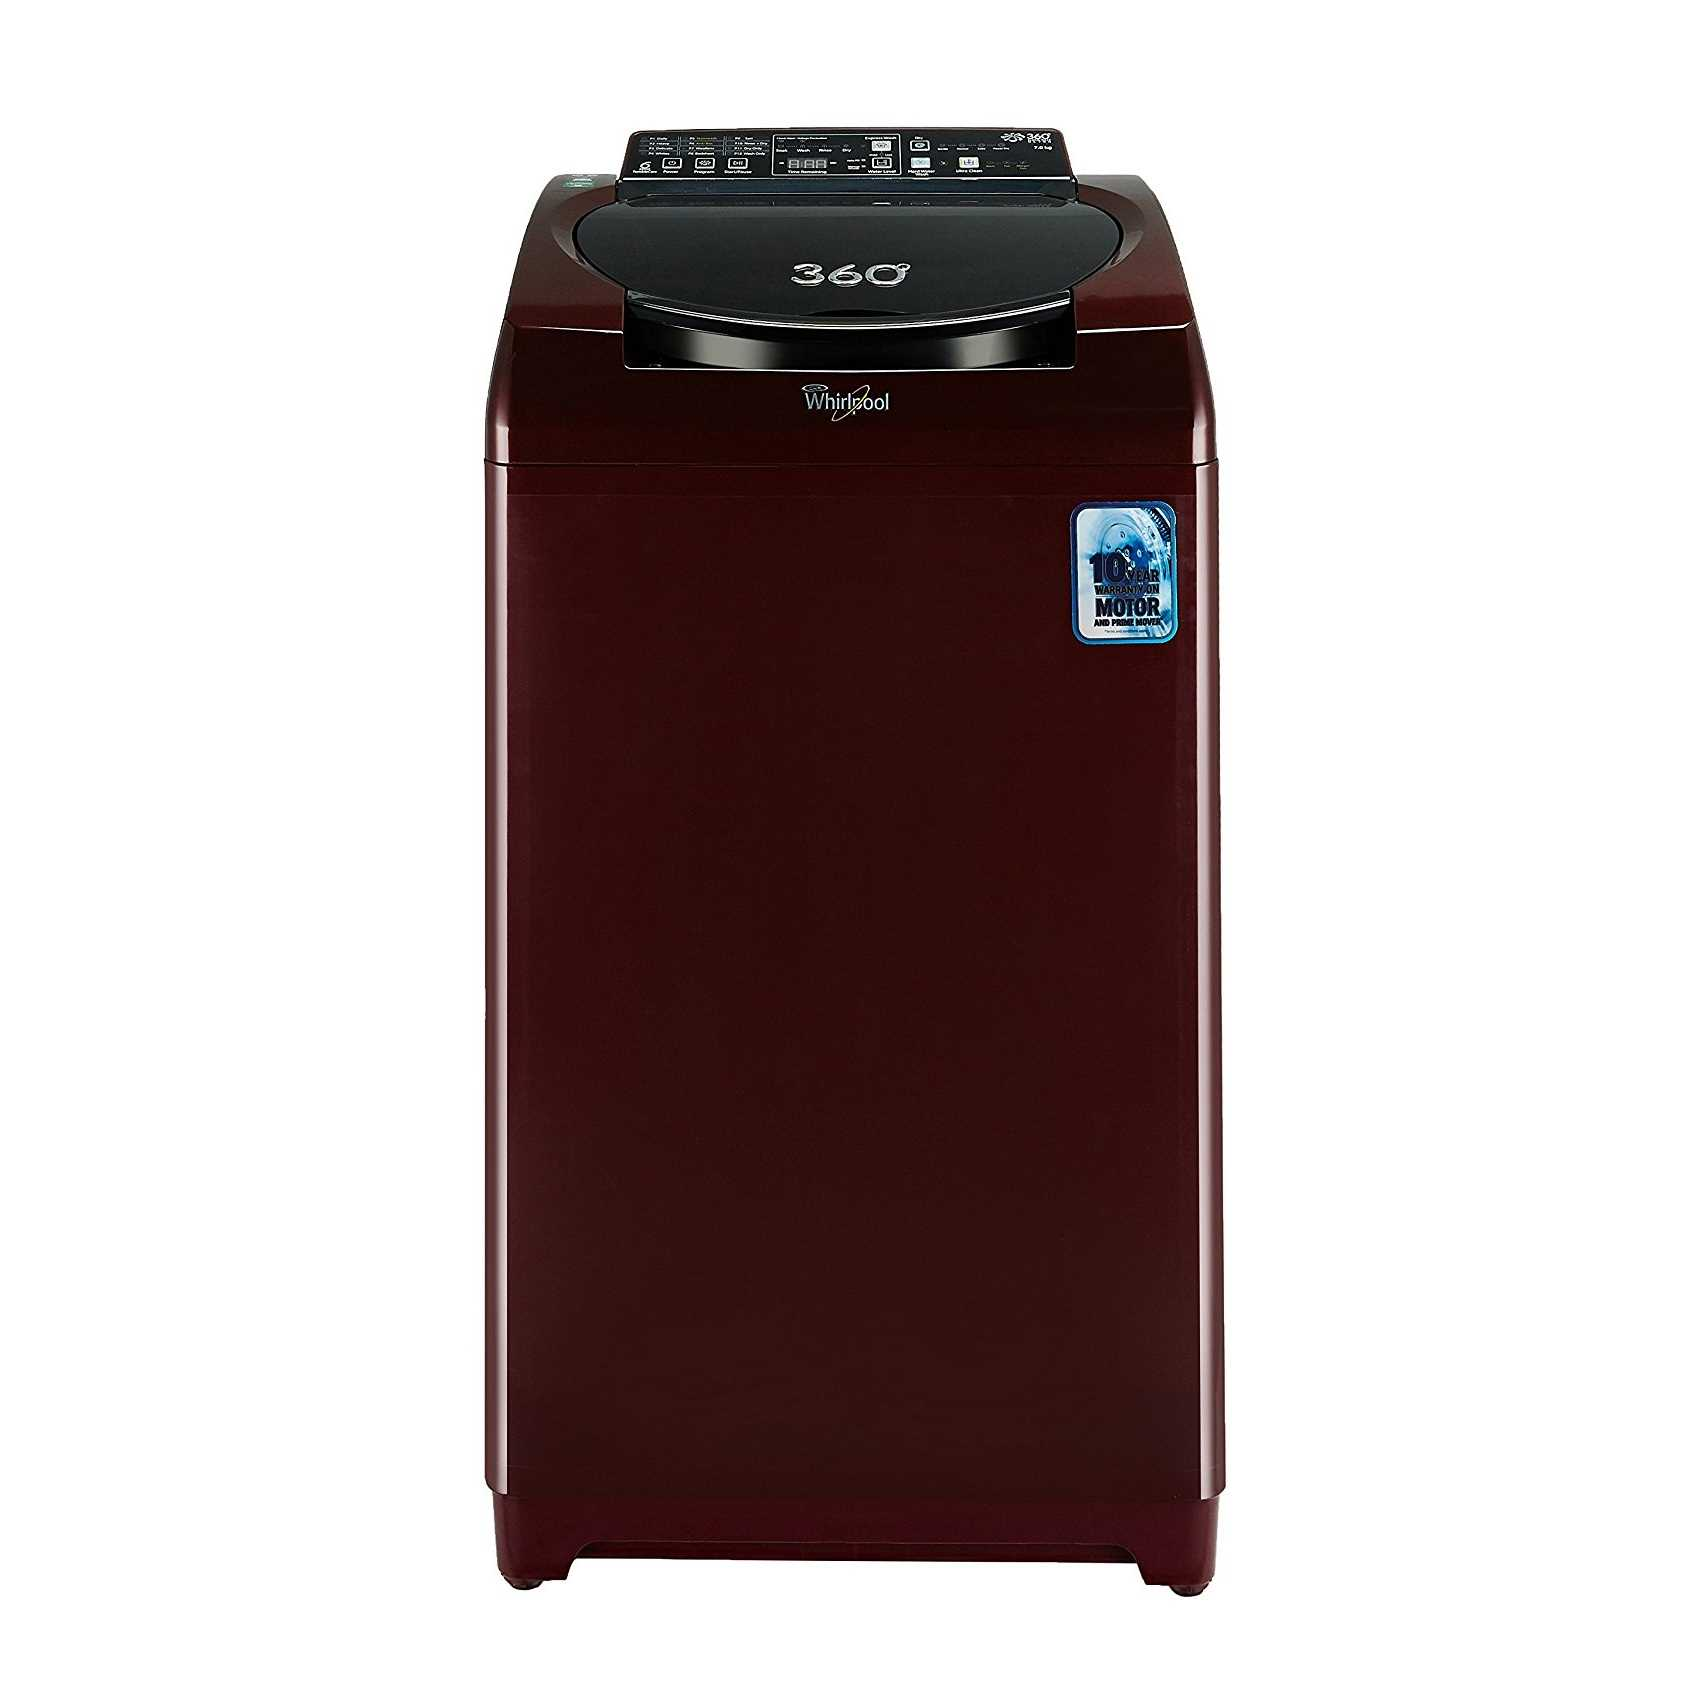 Whirlpool 360° Bloomwash Ultra 7.0 7 Kg Fully Automatic Top Loading Washing Machine